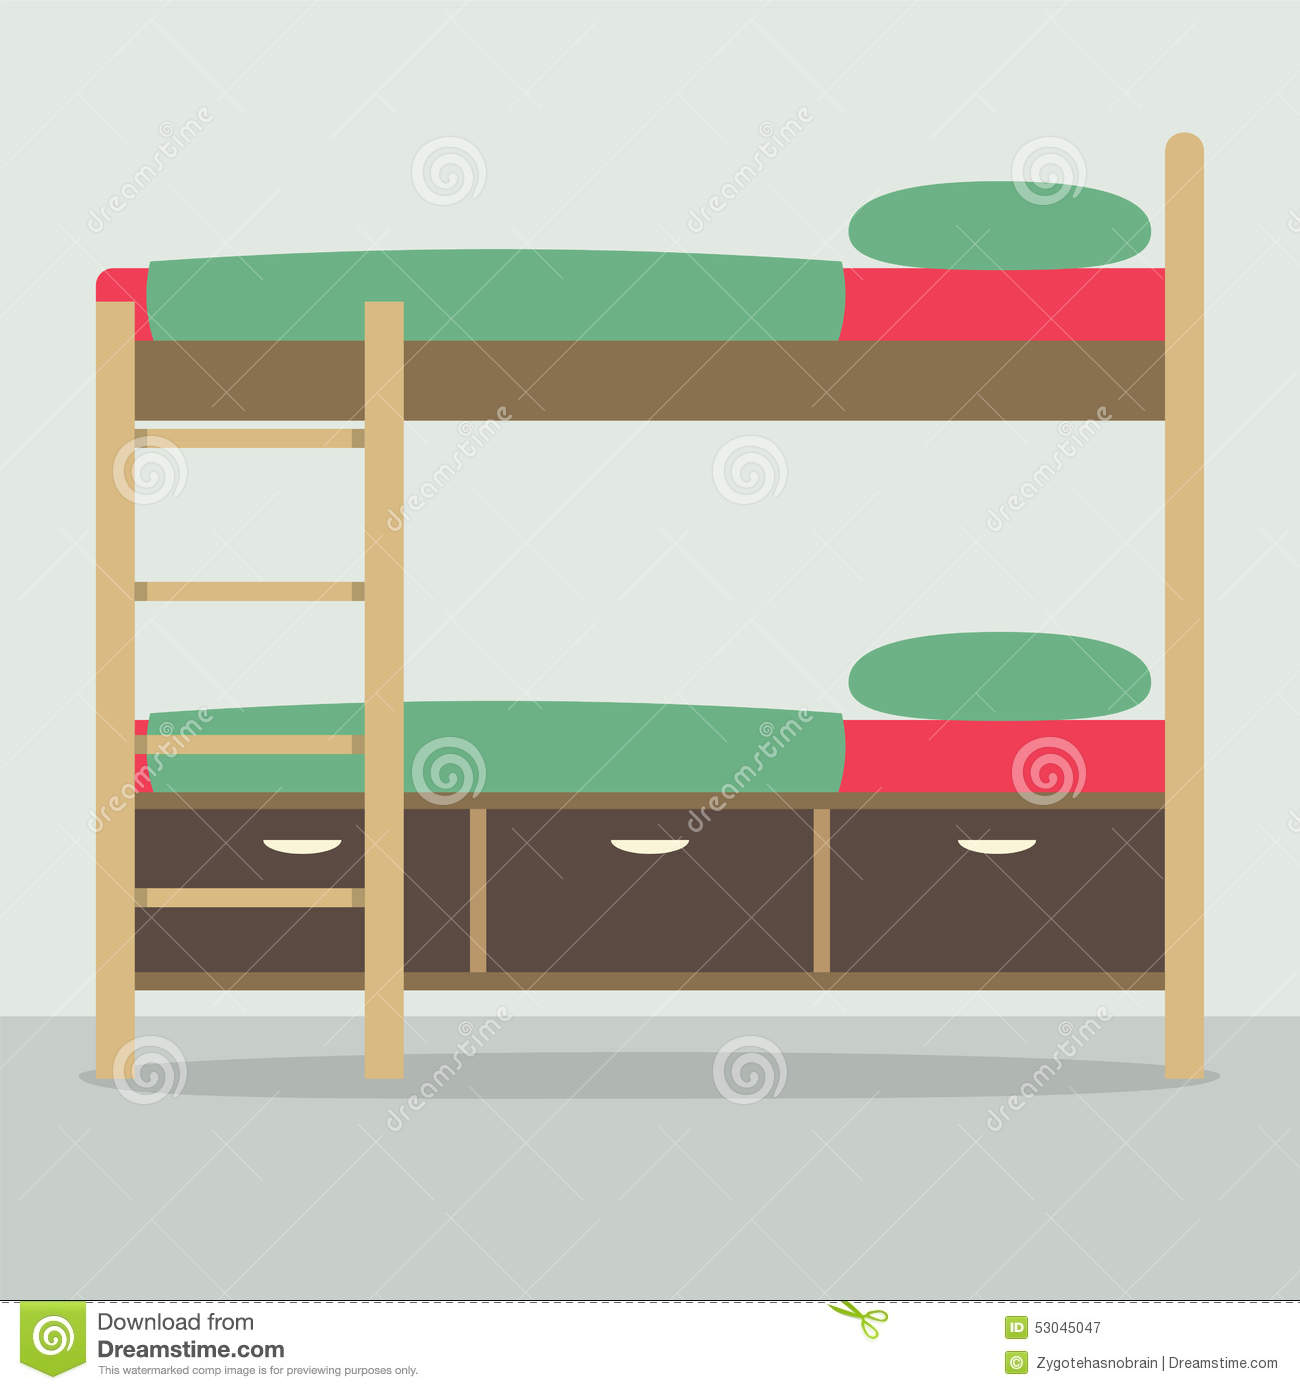 Side View Of Bunk Bed On Floor Stock Vector - Image: 53045047